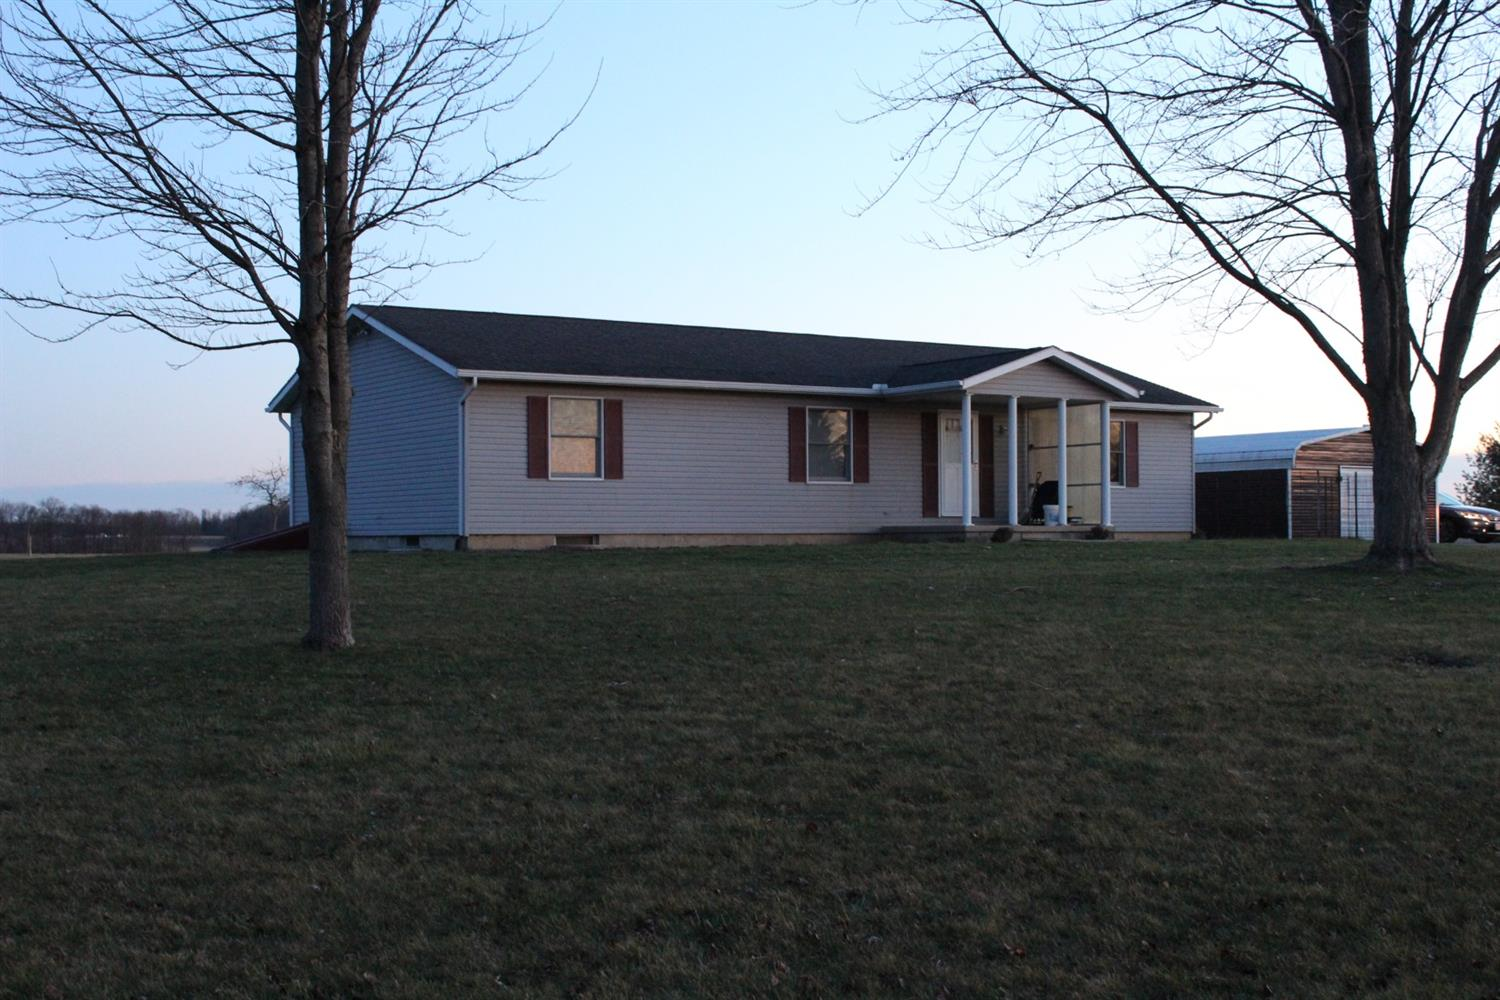 Photo 3 for 1355 Murphy Rd Green Twp. - Clinton Co., OH 45177